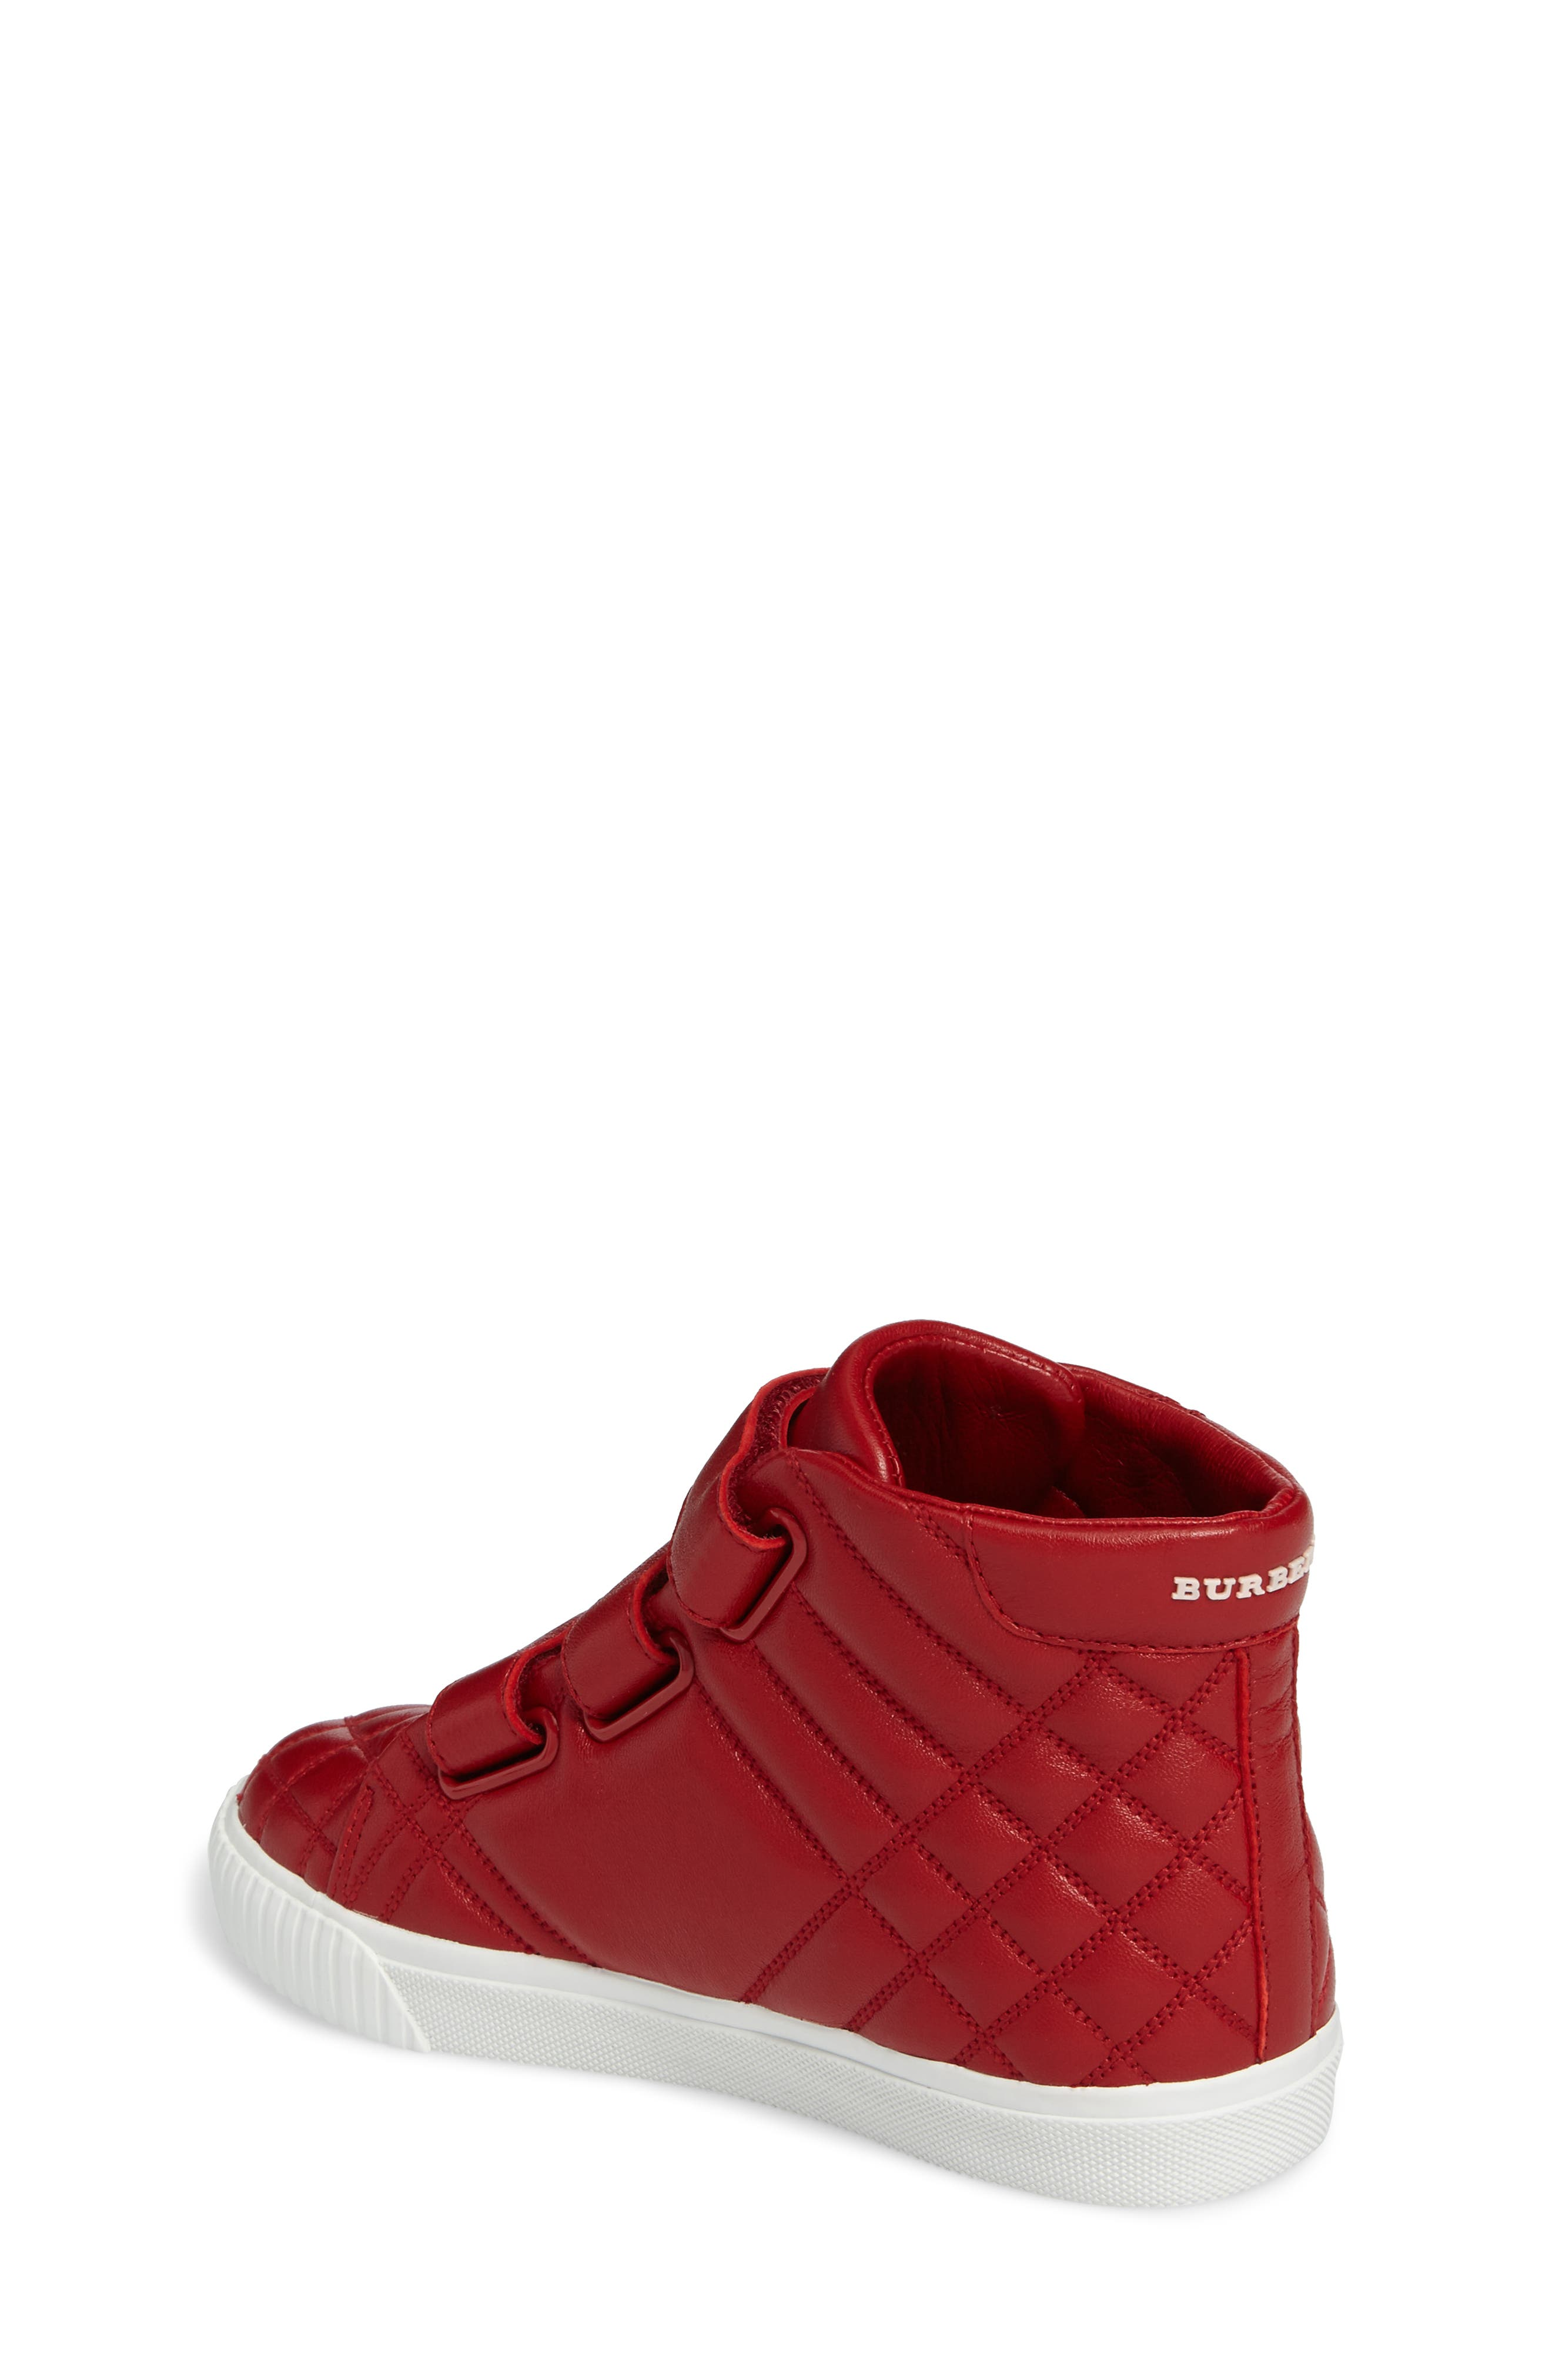 Sturrock Quilted High Top Sneaker,                             Alternate thumbnail 4, color,